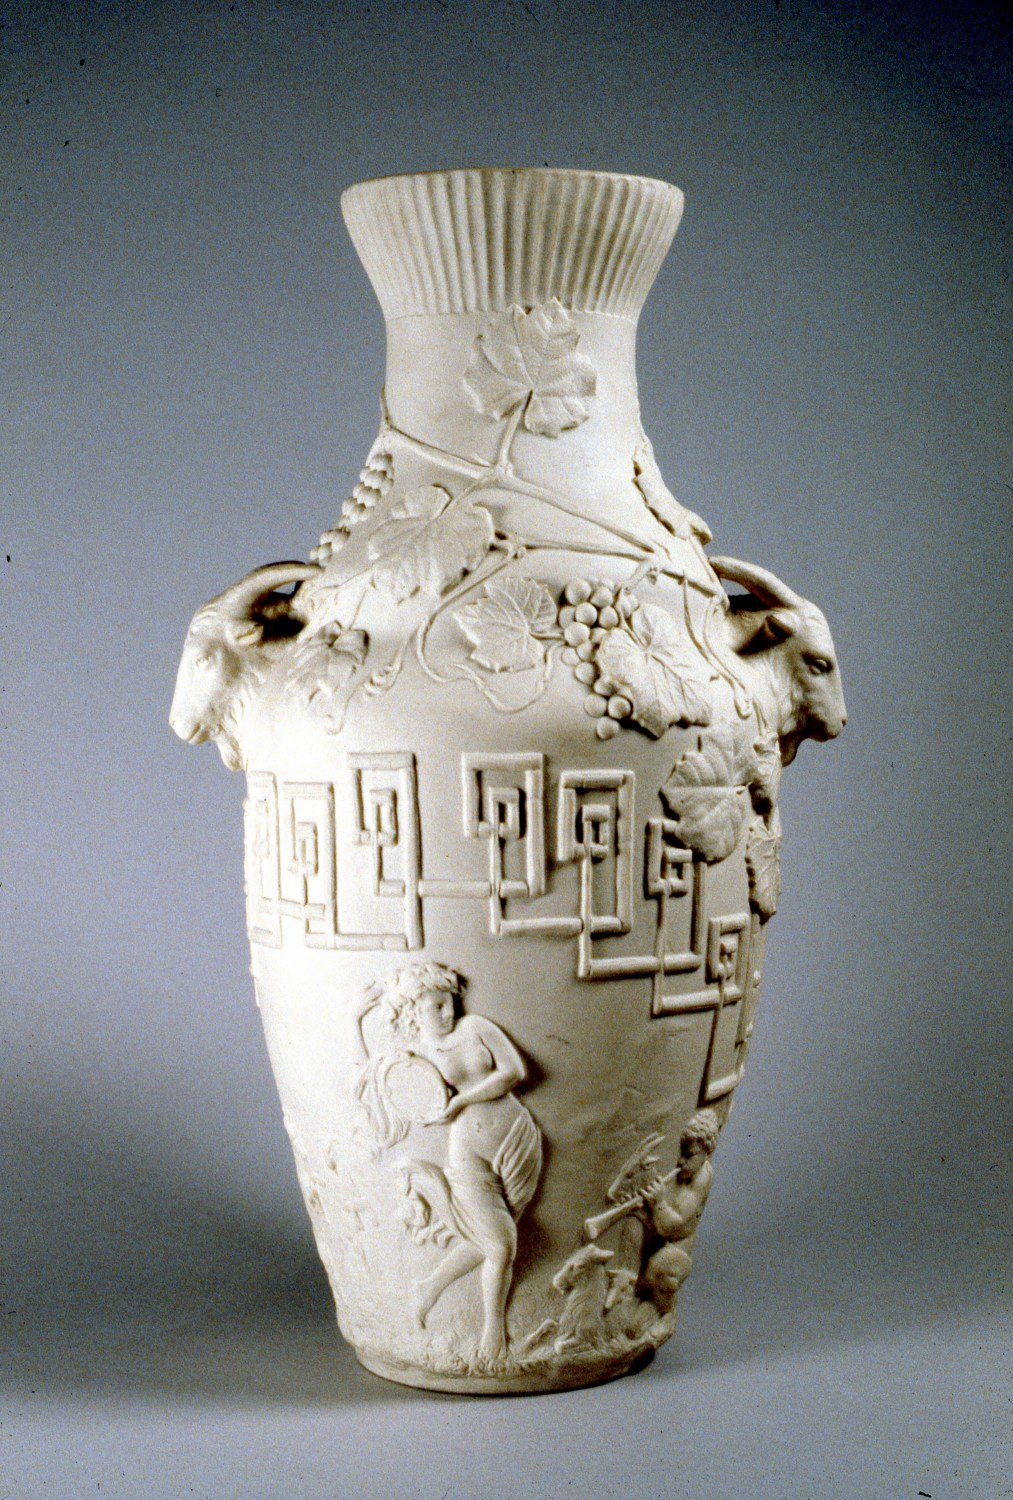 Ott & Brewer, Etruria Works, Pastoral Vase, parian, Isaac Broome designer and modeller, 1875